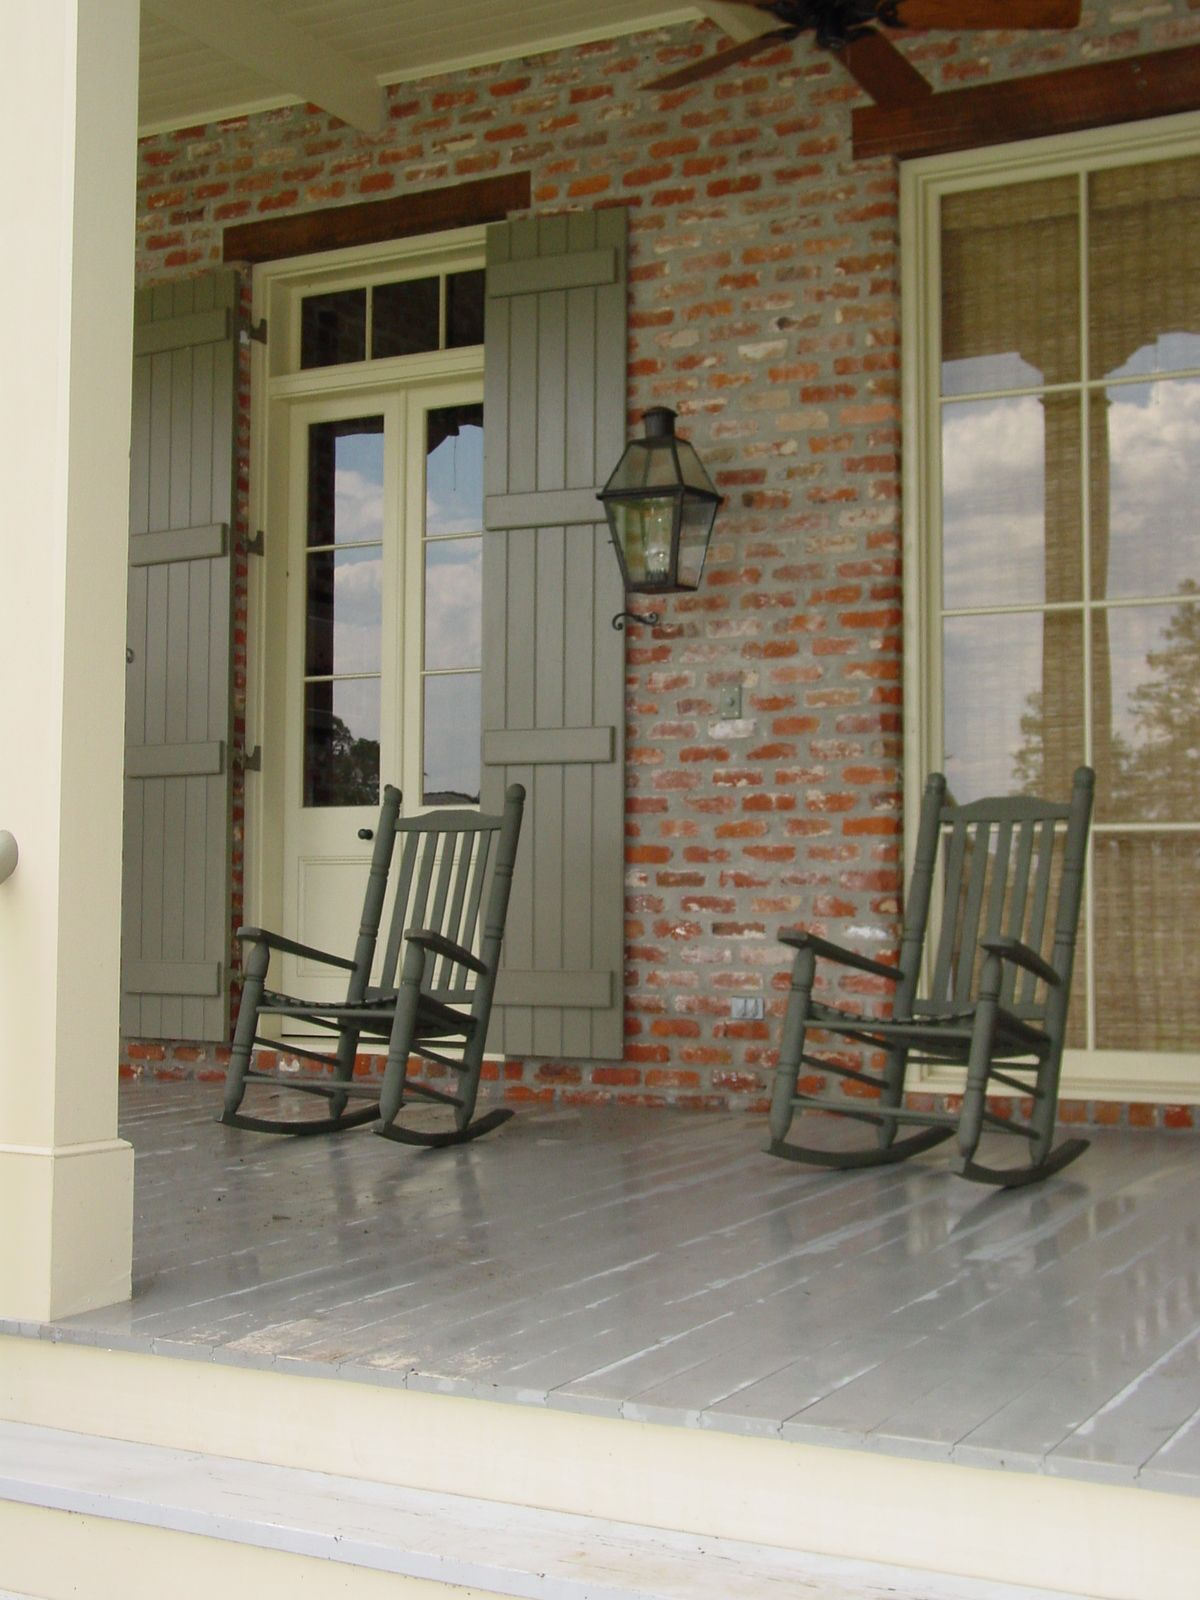 Handwerker stil haus exterieur design very southern porch canut go wrong with rockers on the front porch